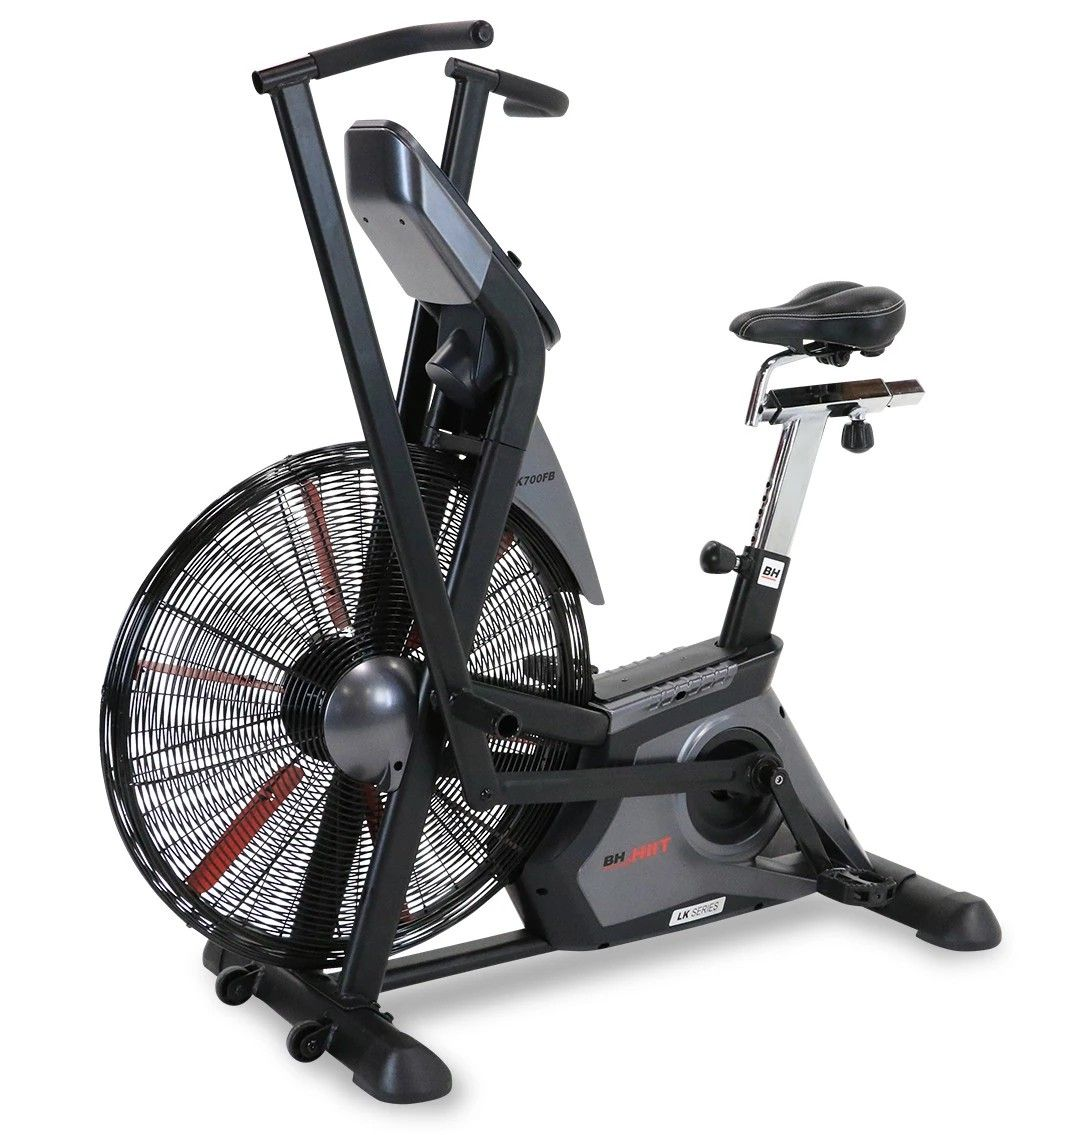 Pin by Terry _C on air bike Bike, Stationary bike, Lower